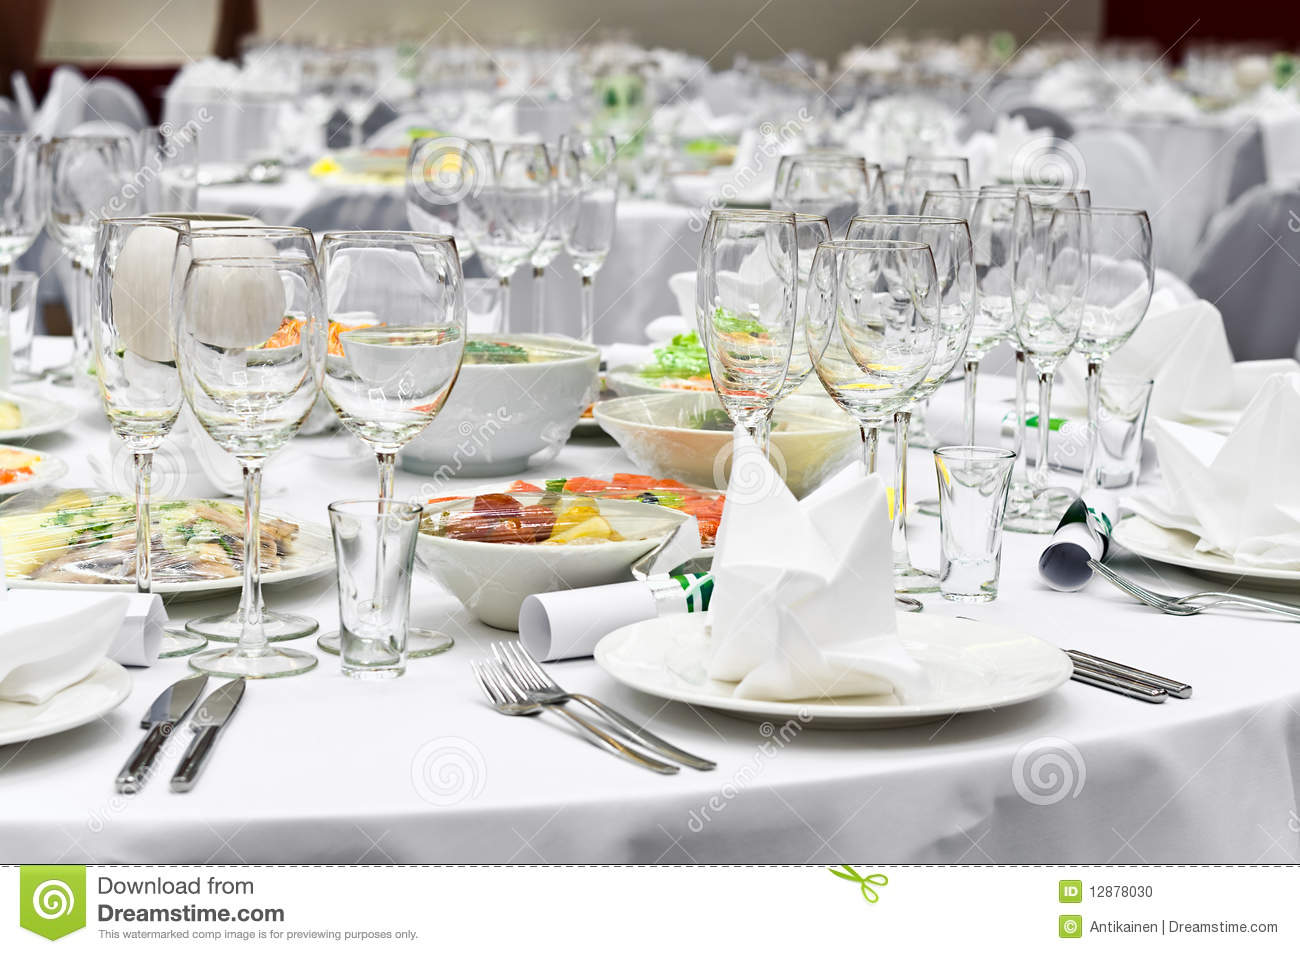 formal dinner service as at a wedding banquet stock photo image of napkin lifestyles 12878030. Black Bedroom Furniture Sets. Home Design Ideas